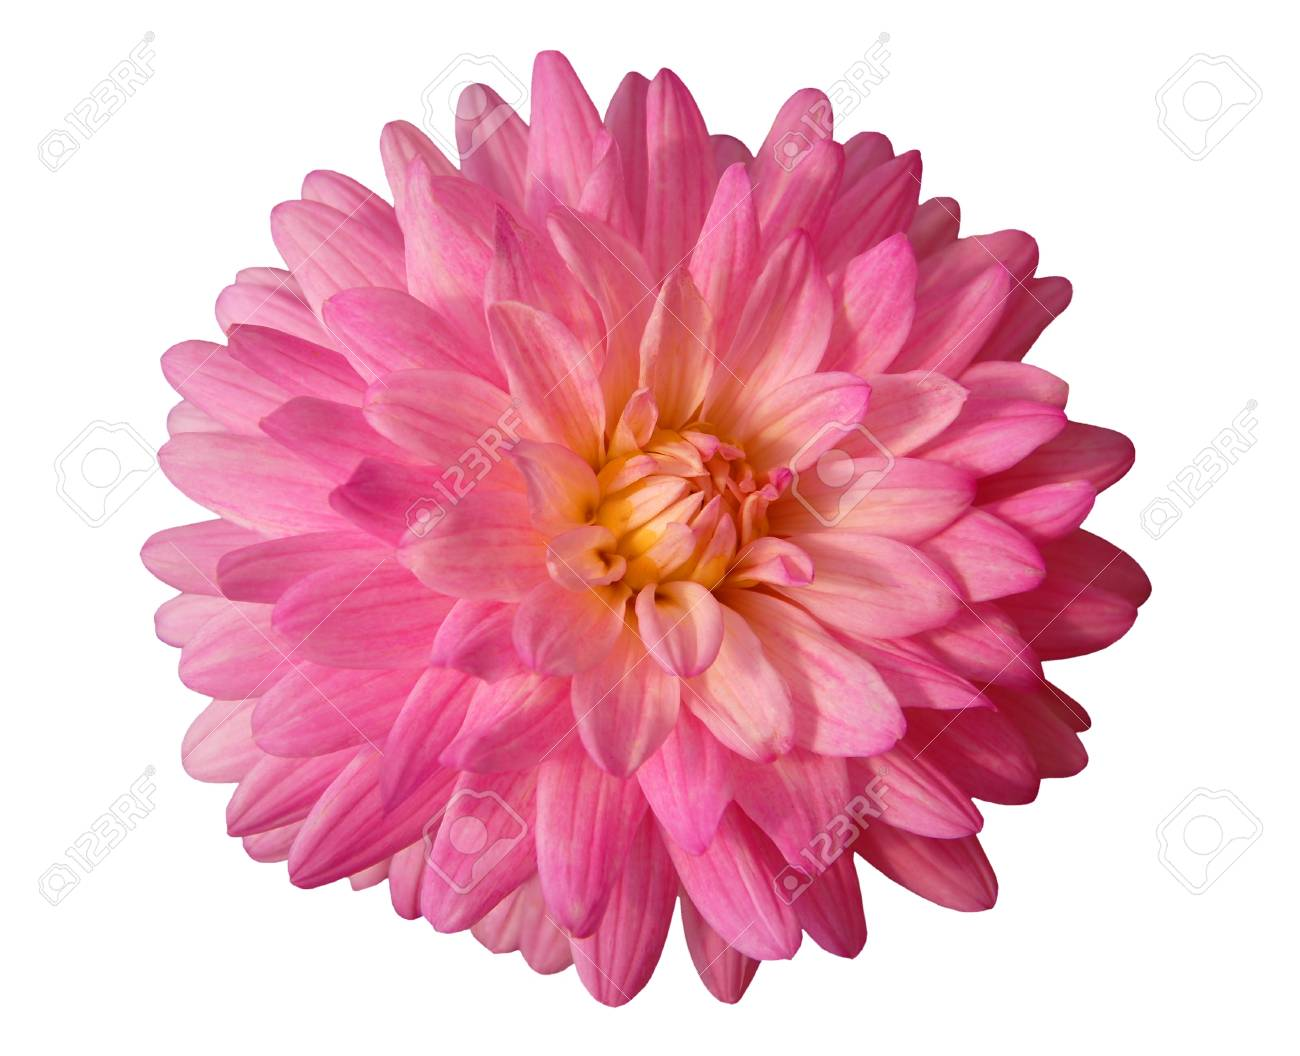 Pink dahlia flower isolated on white background stock photo picture pink dahlia flower isolated on white background stock photo 61228669 izmirmasajfo